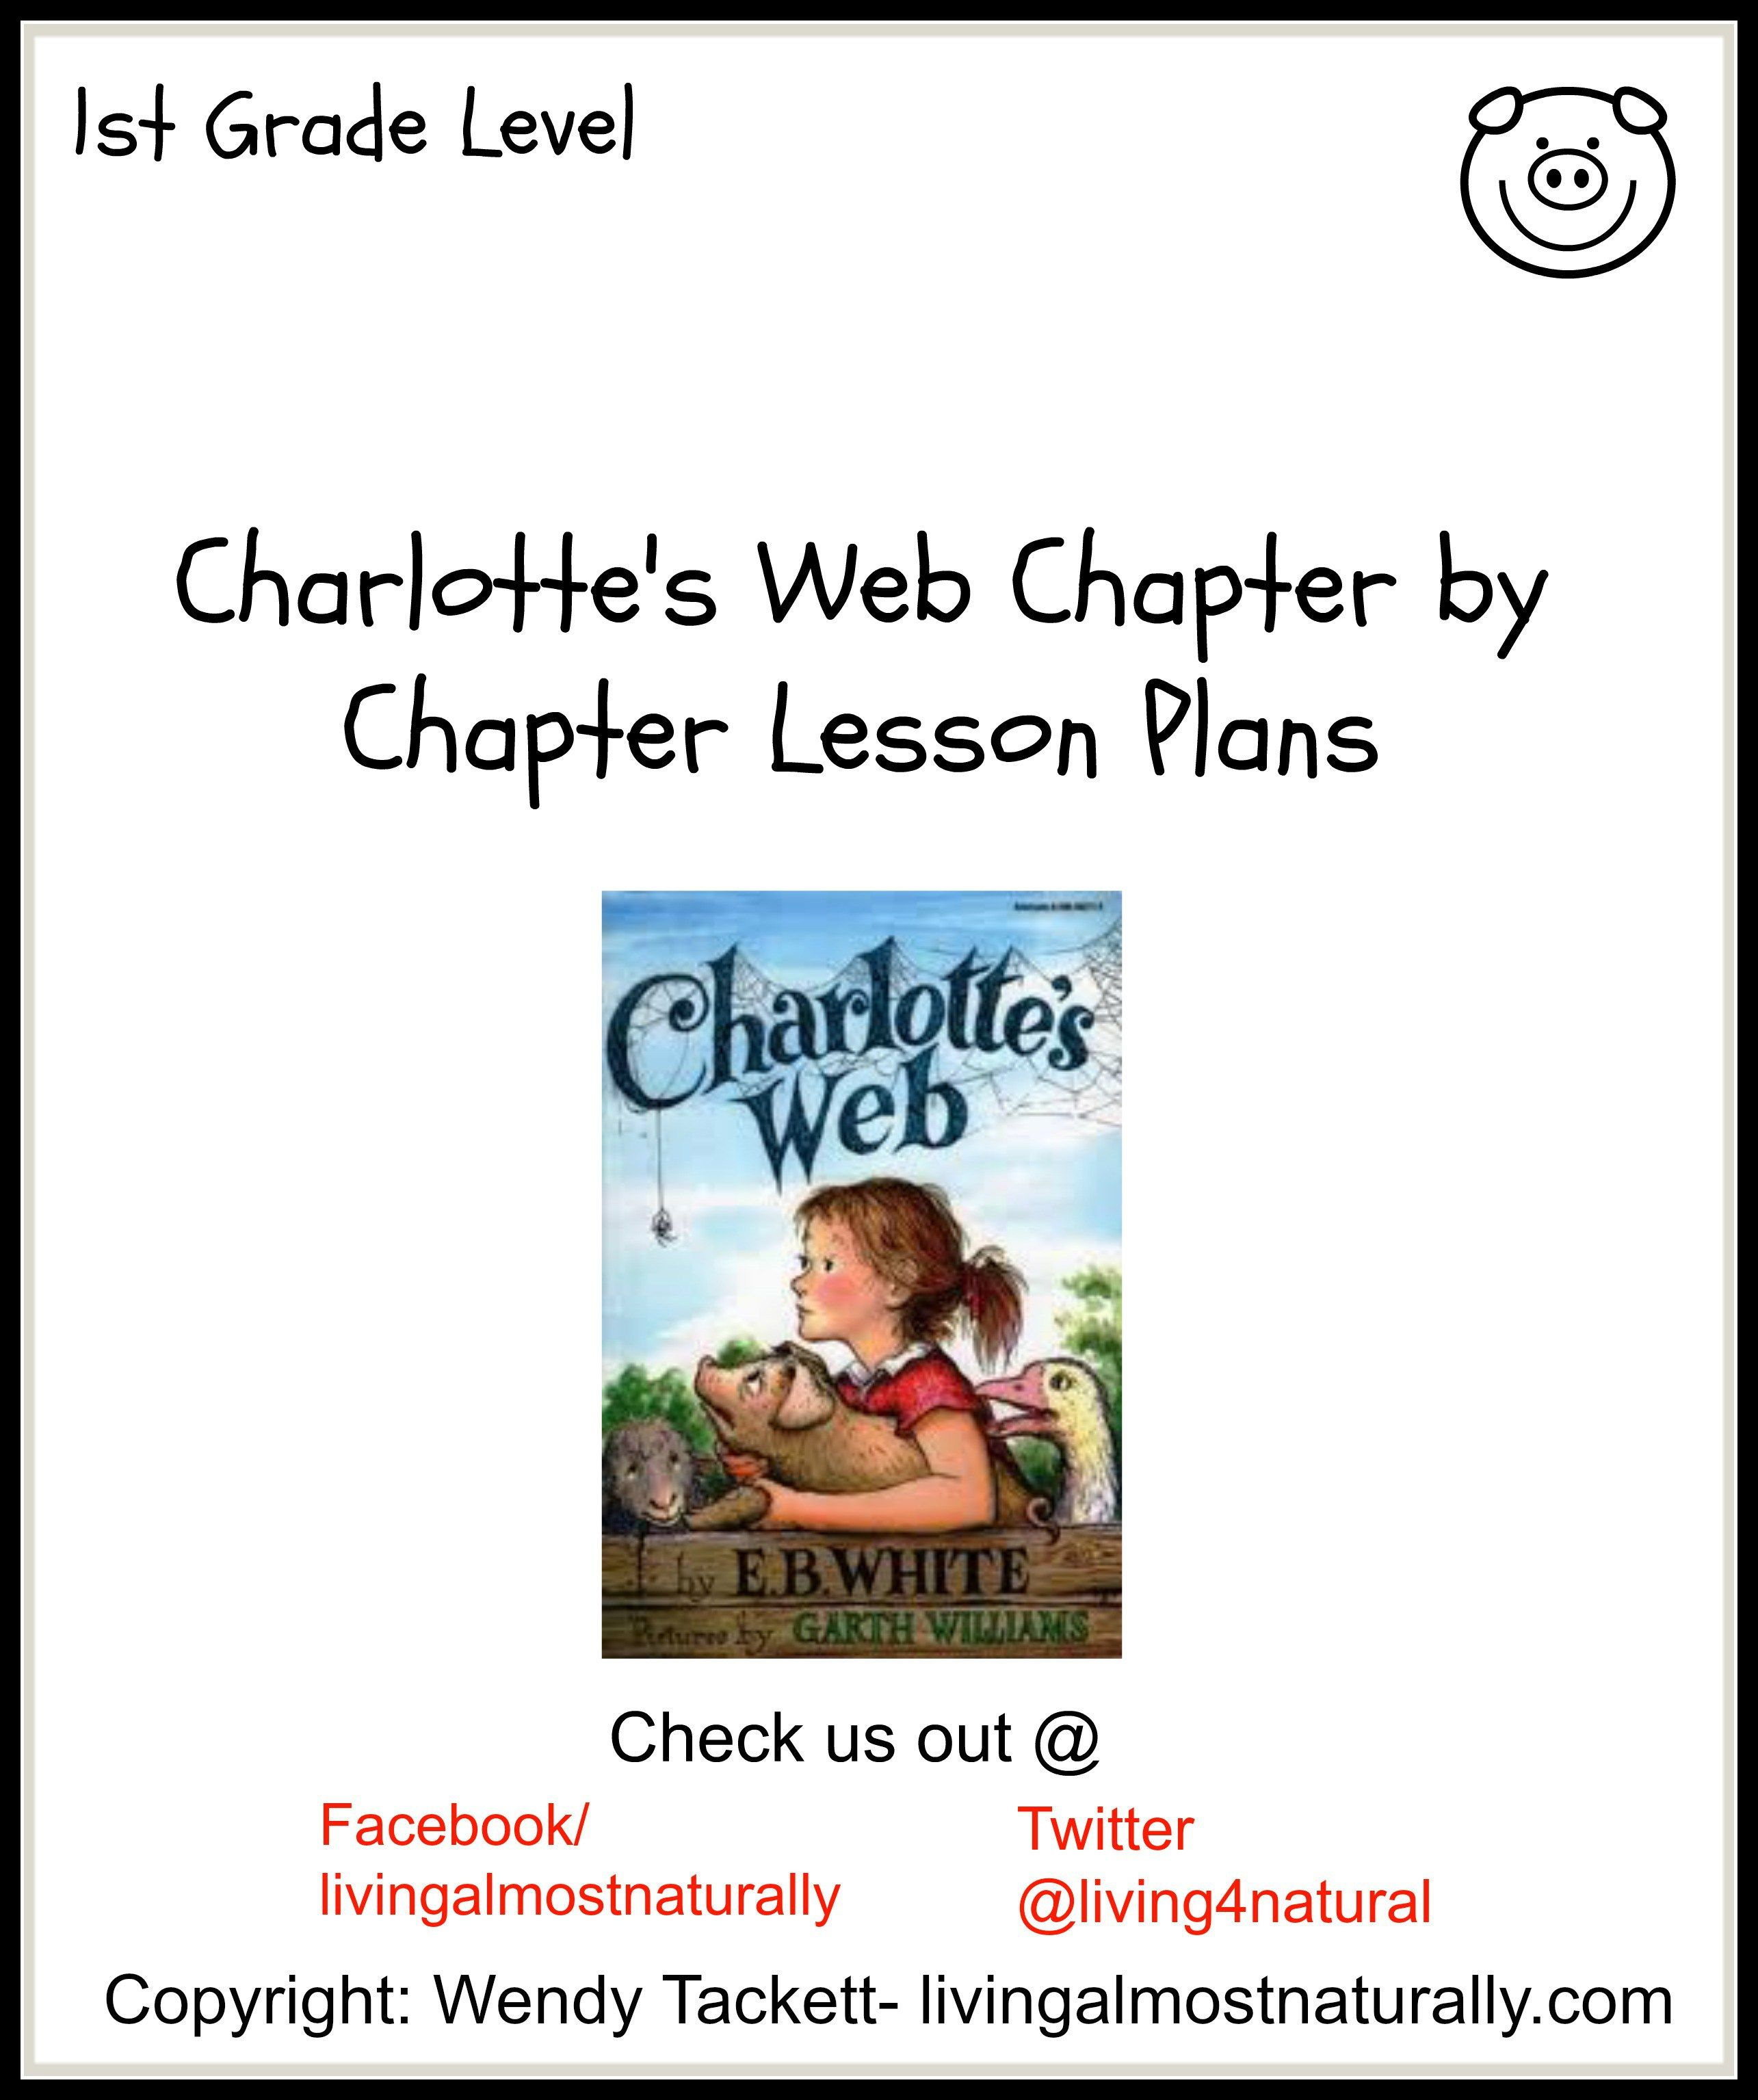 Charlottes Web Chapter By Chapter Lesson Plans